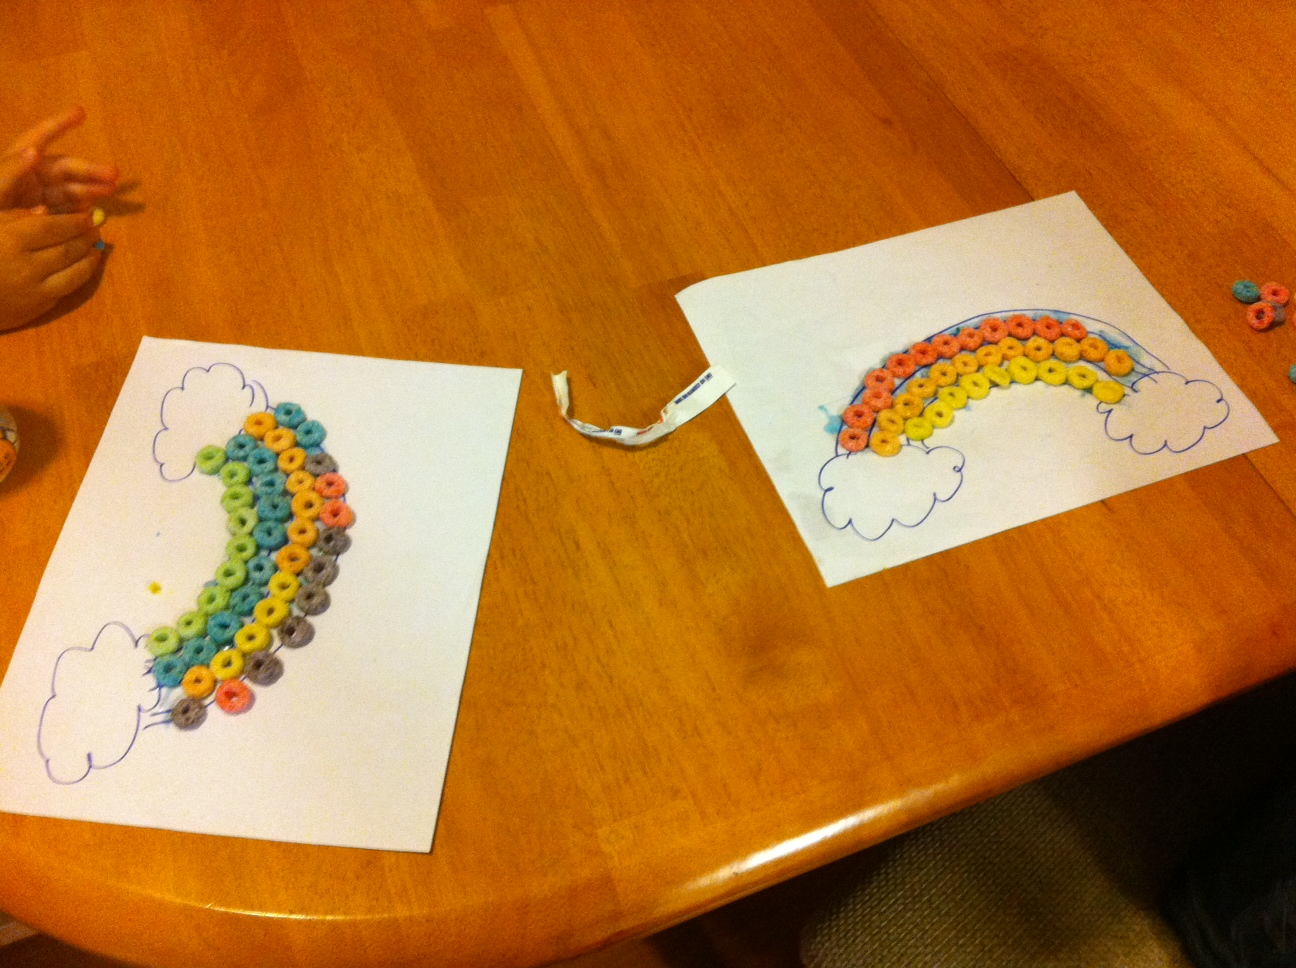 Arts and crafts for a 1 year old - 6 Year Old Crafts Arts And Crafts For 2 Year Old Crafts For 7 Year